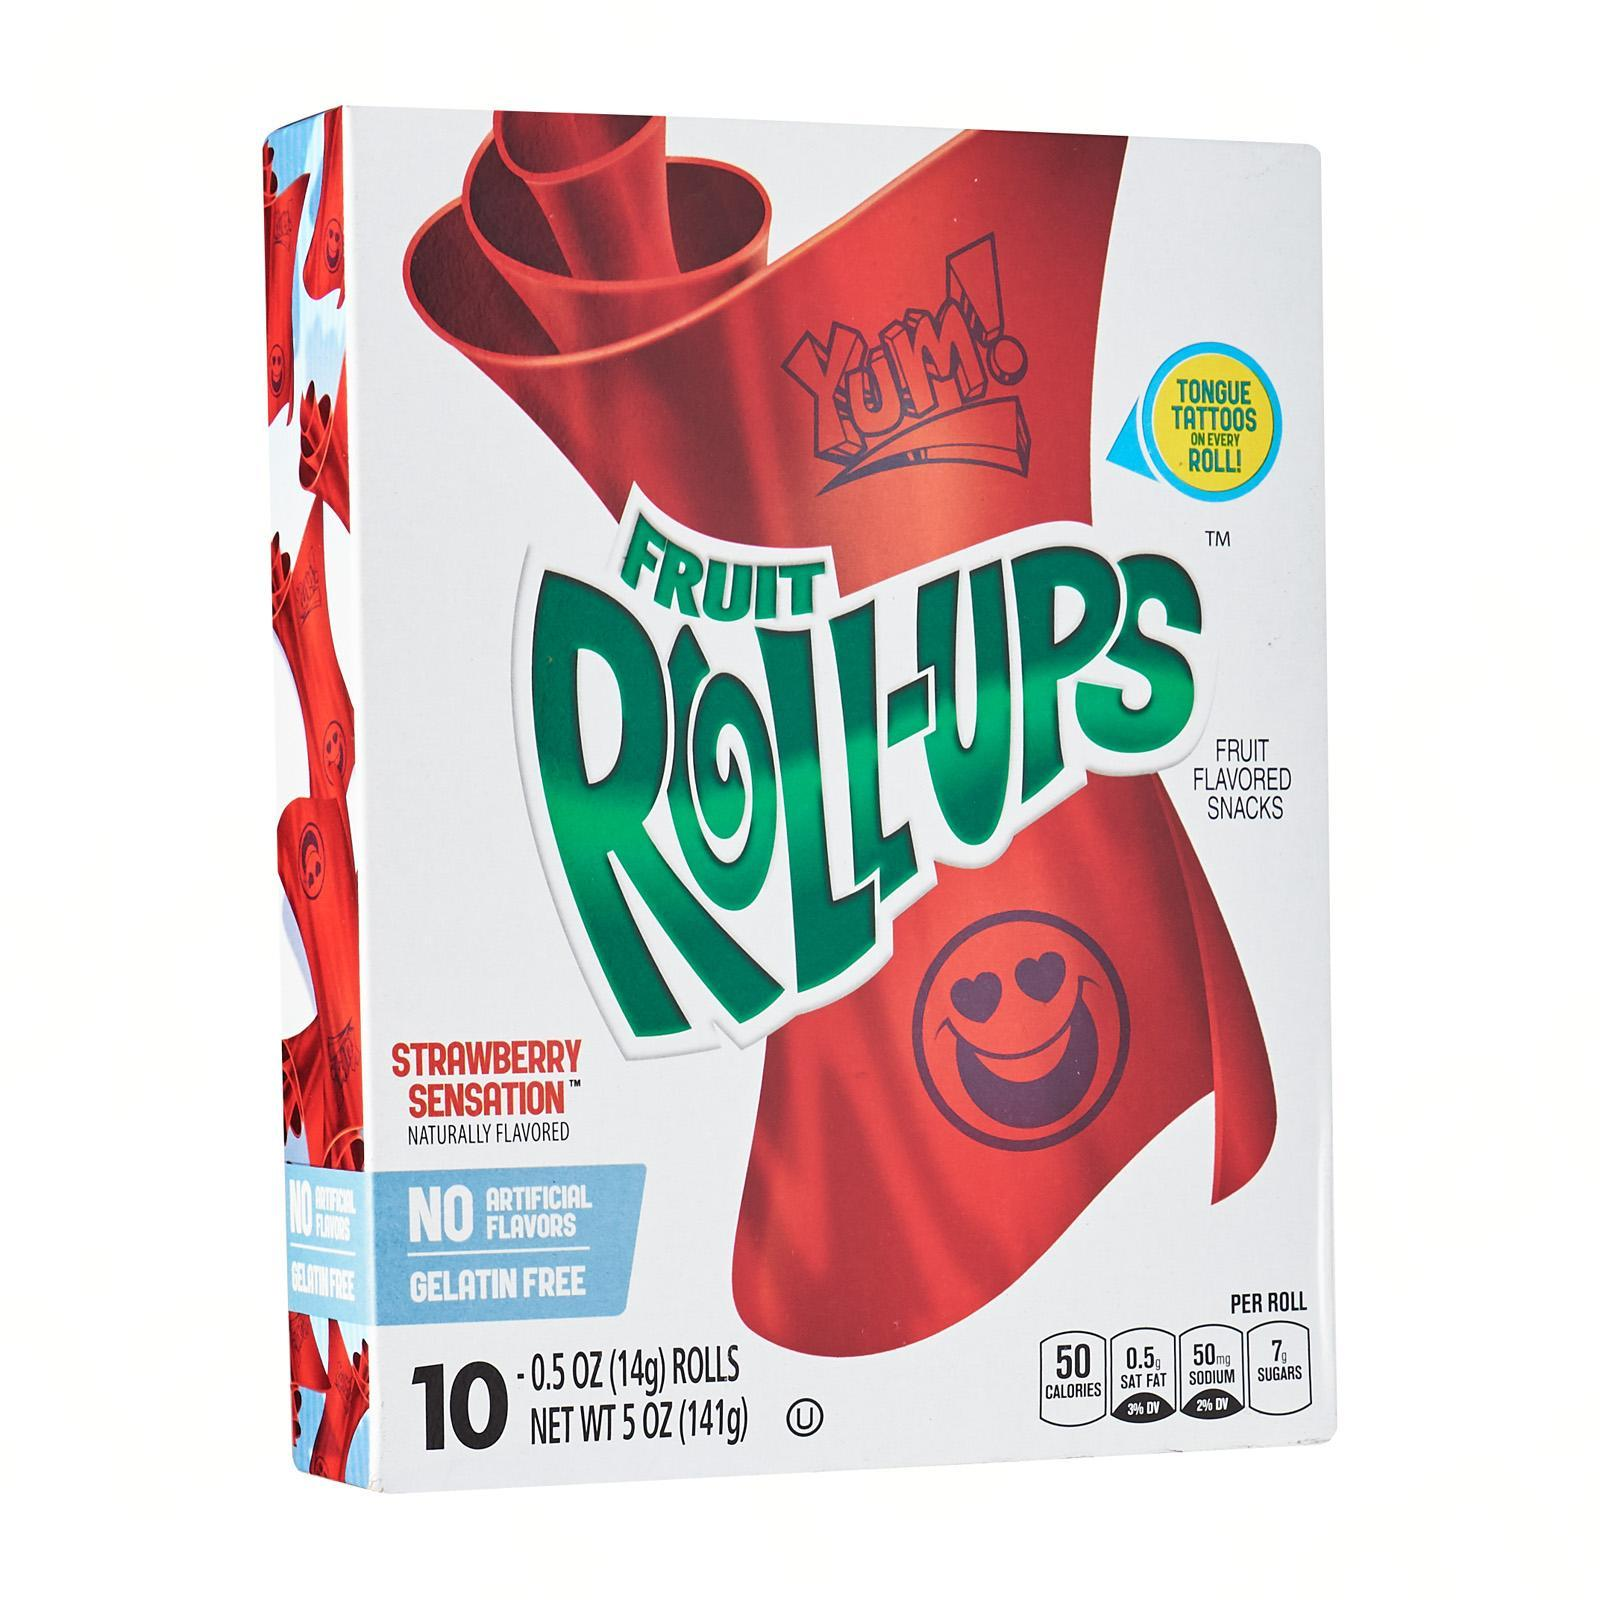 Betty Crocker Fruit Roll-Ups Fruit Flavored Snacks Strawberry